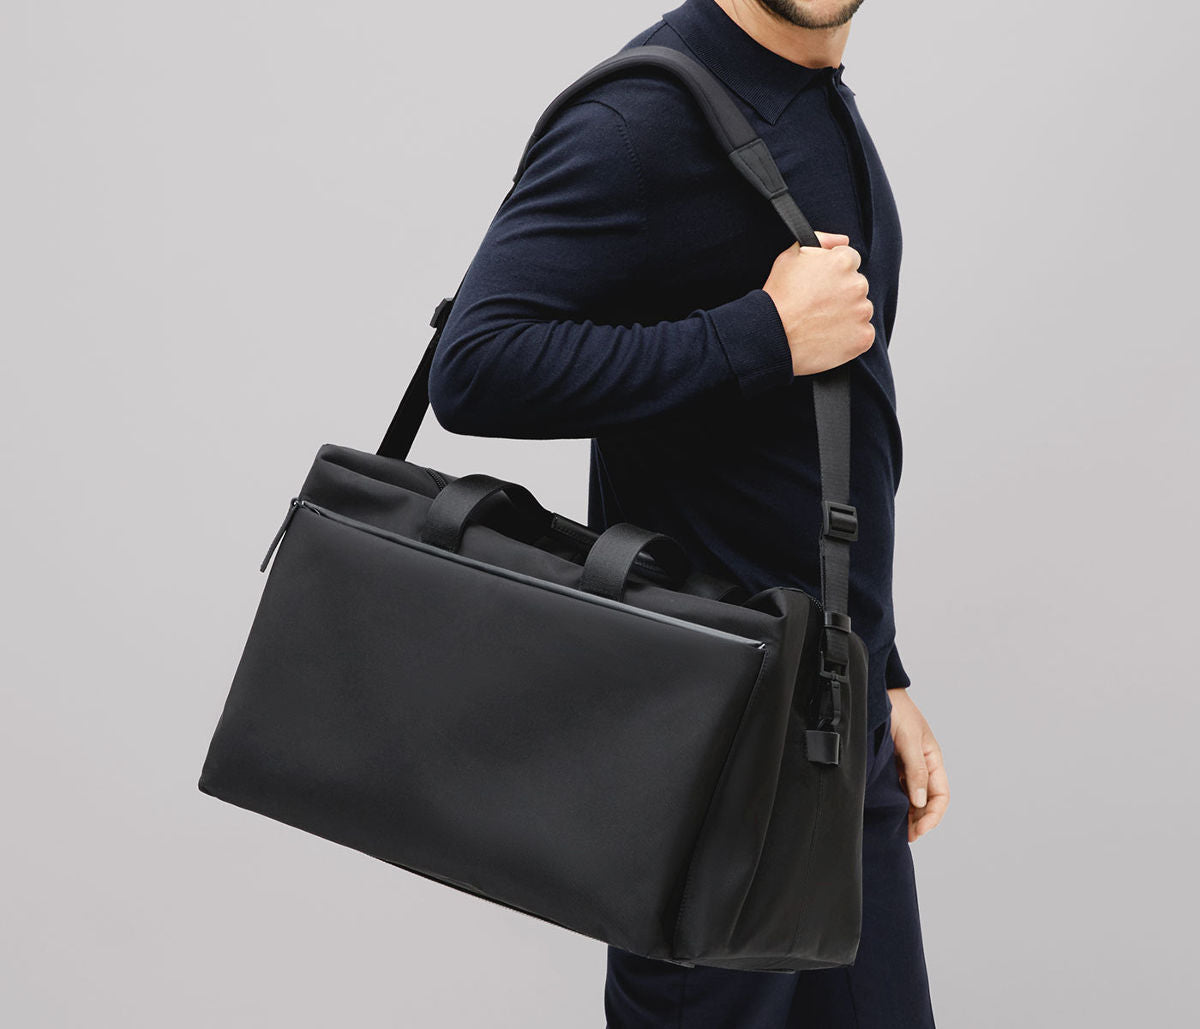 Luxury light duffle bag in black